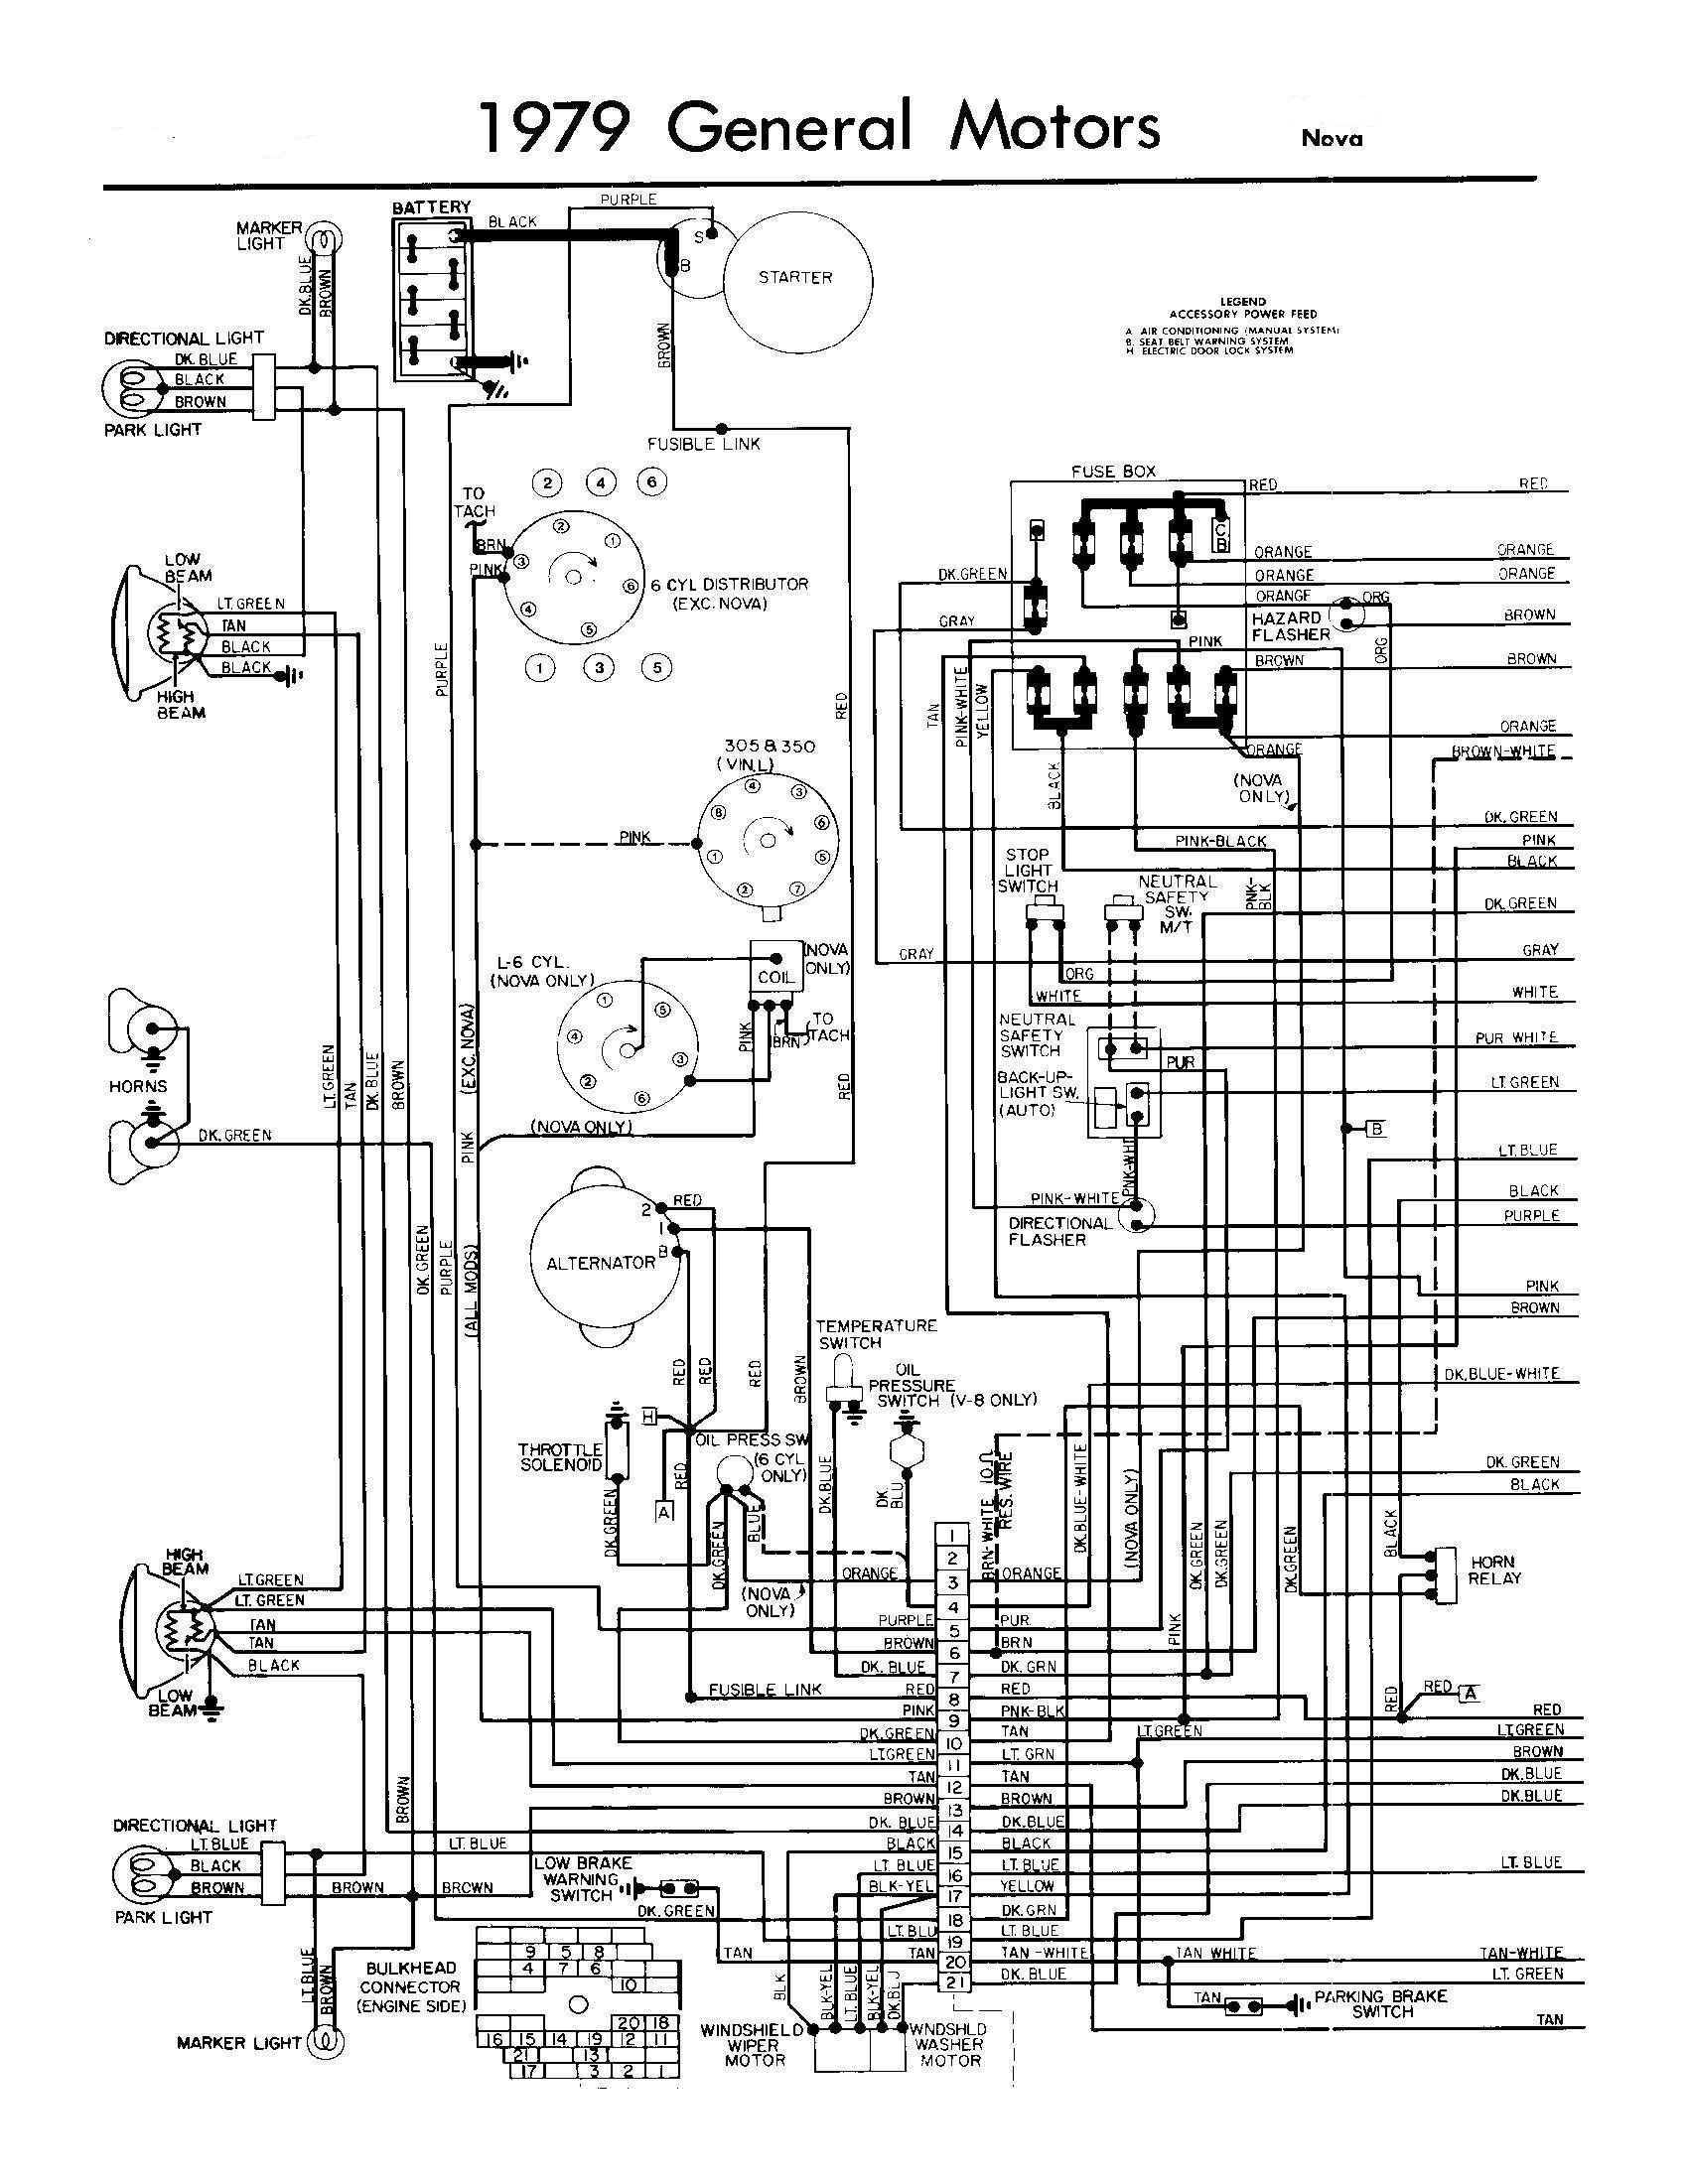 Subwoofer Wiring Diagrams Mazda Mx6 Forum - WIRE Center •